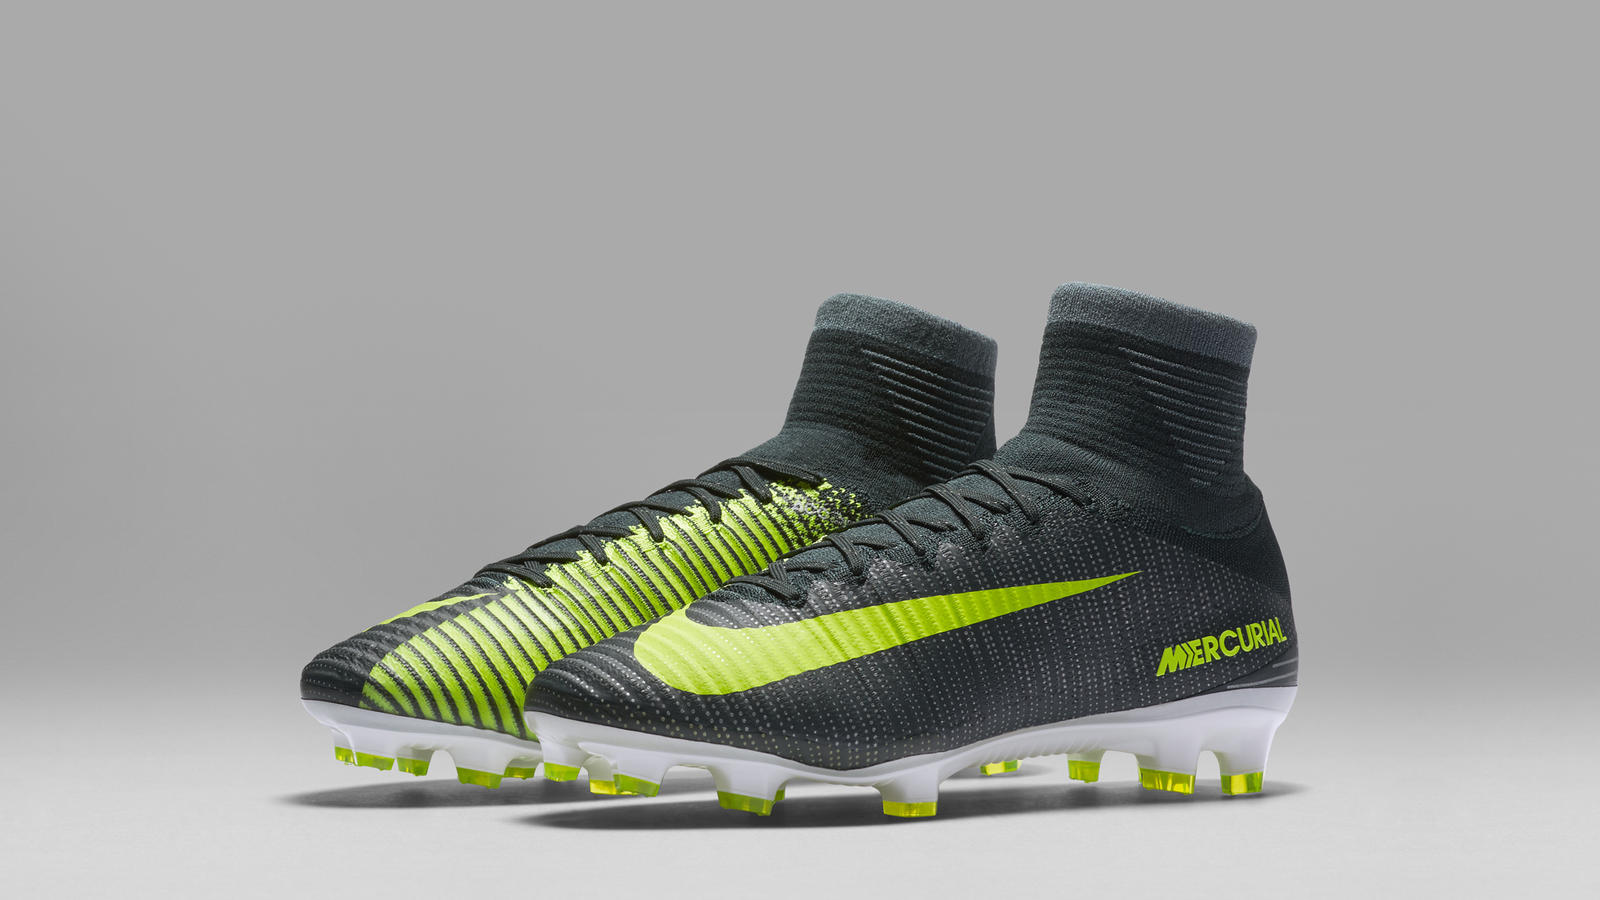 Nike have made cristiano ronaldo a special pair of boots inspired ho16gfbcr7chapter3mercurialsuperflyfg0707hd1600 ho16gfbcr7chapter3mercurialsuperflyfg0307hd1600 voltagebd Gallery